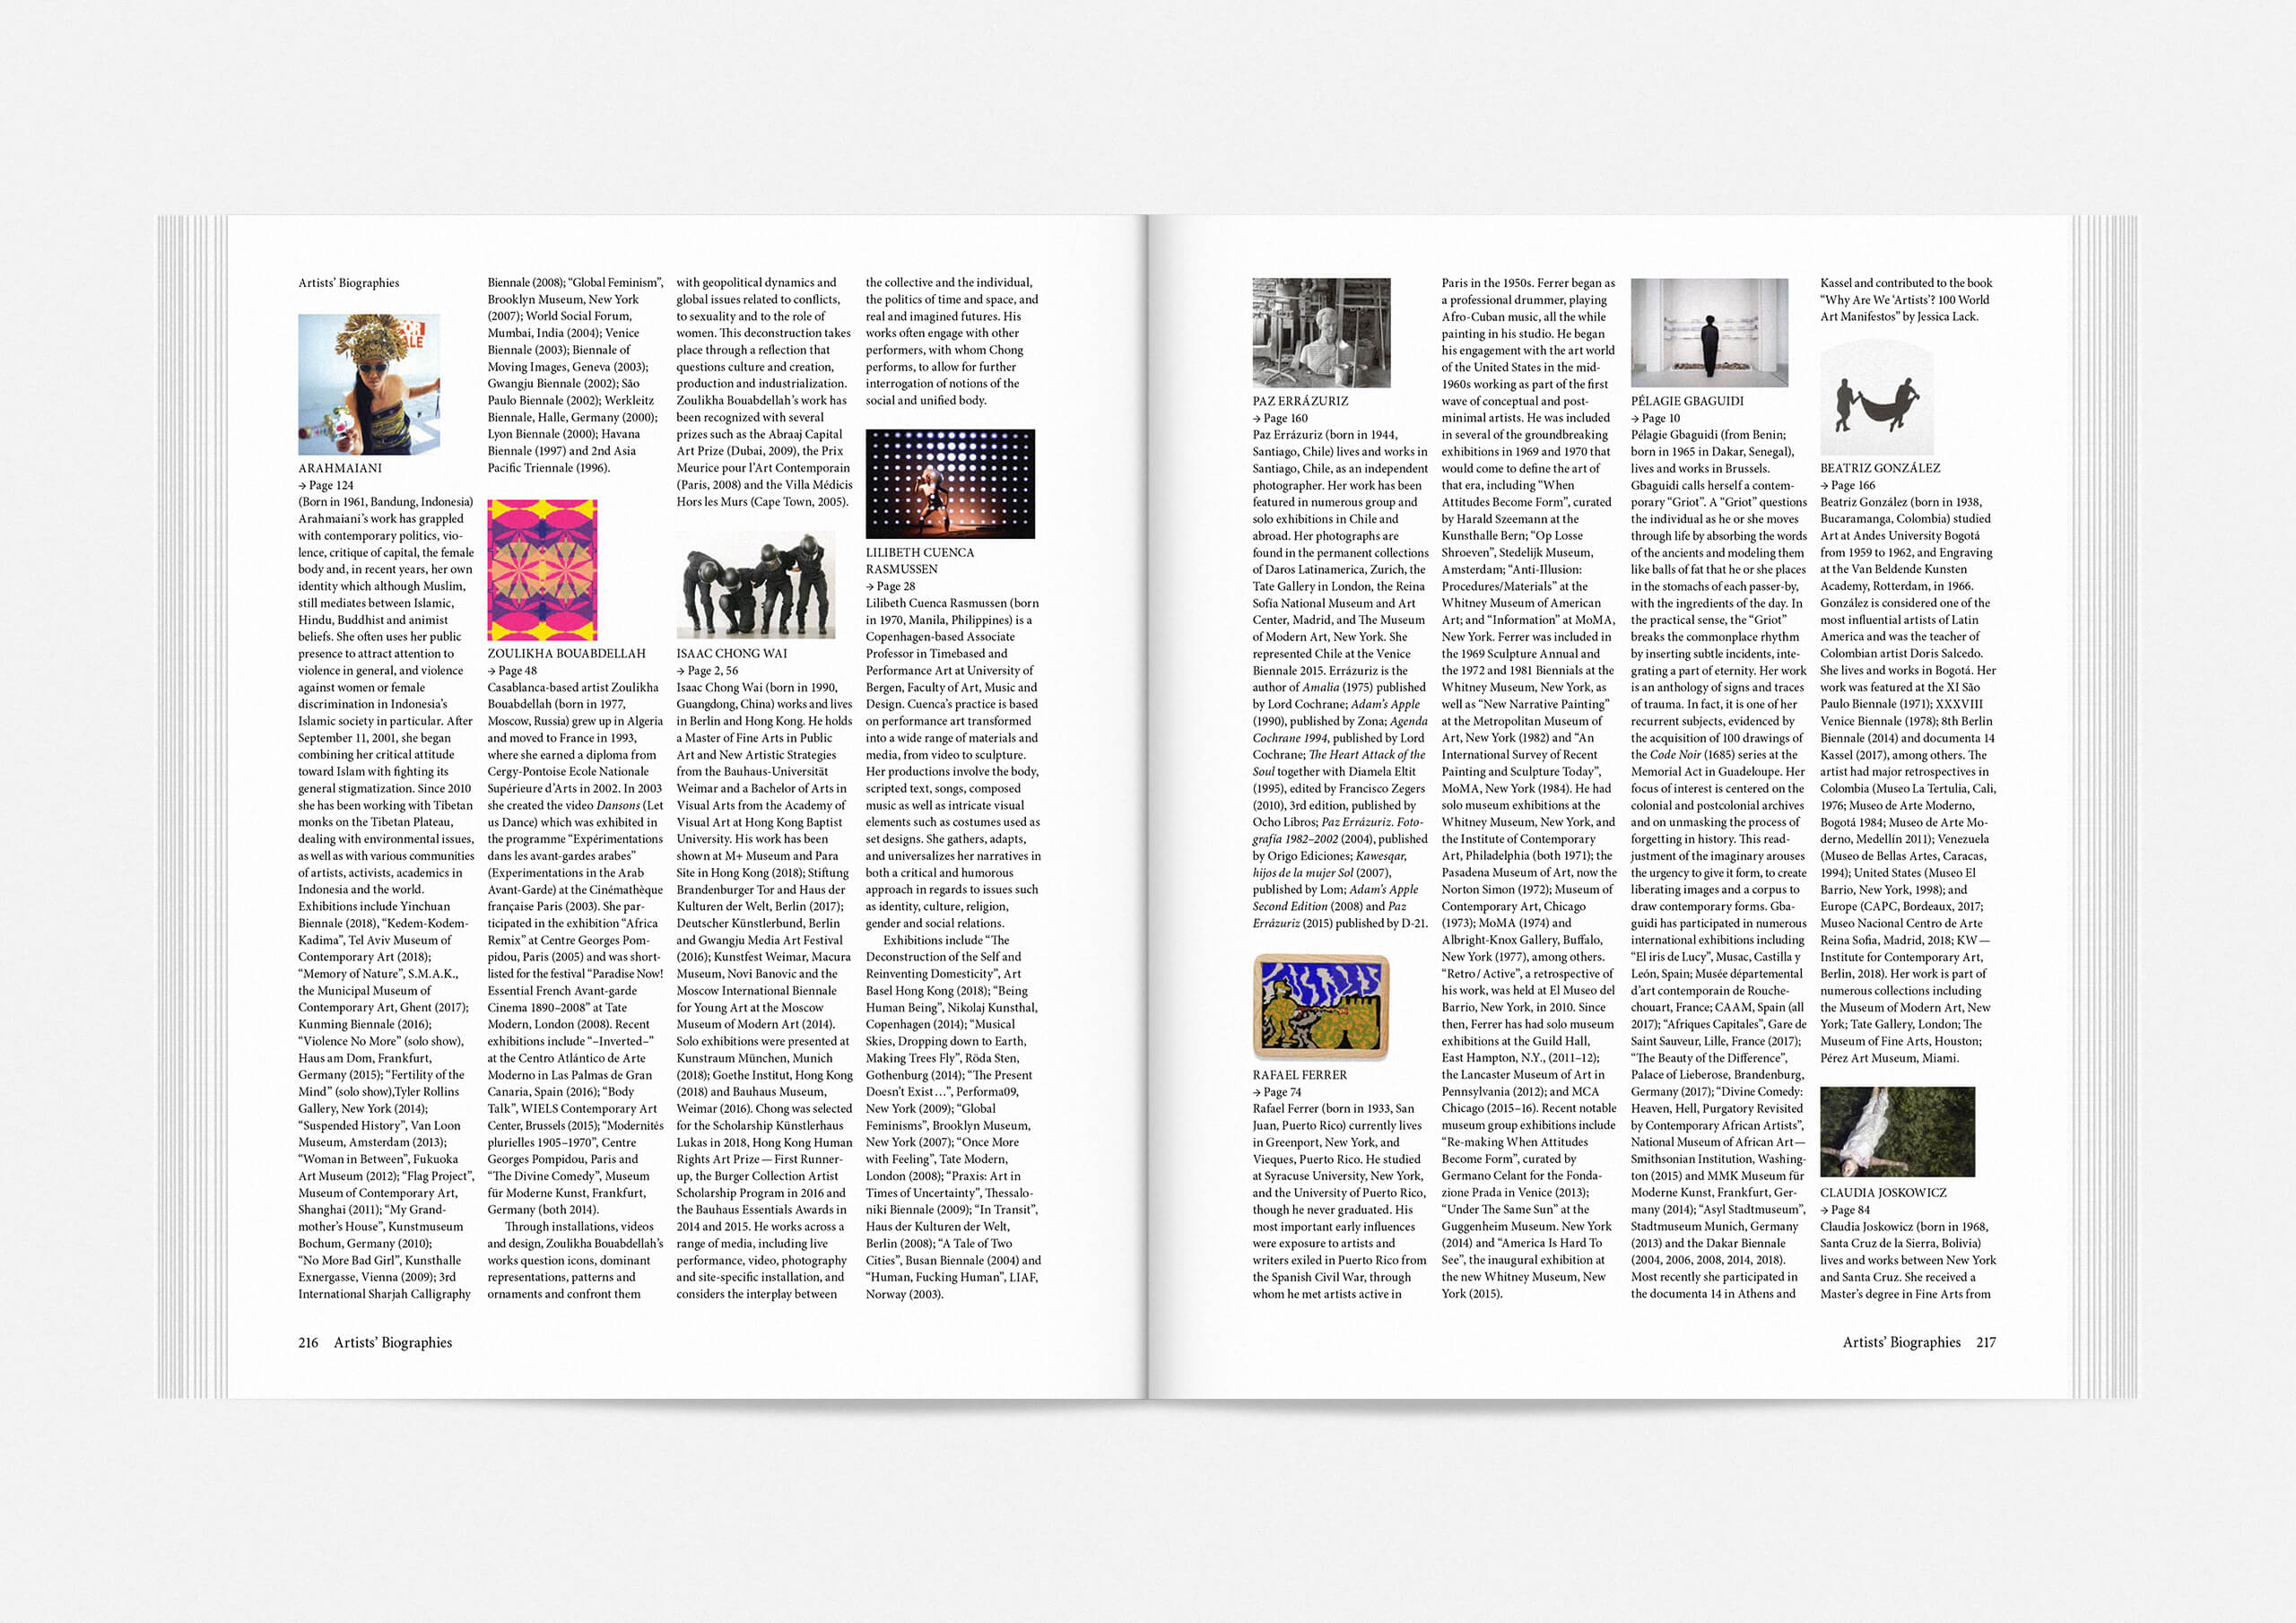 http://neuegestaltung.de/media/pages/clients/protocollum-issue-no-05/189fdfd64d-1597415145/protocollum-5-page-216217-ng.jpg